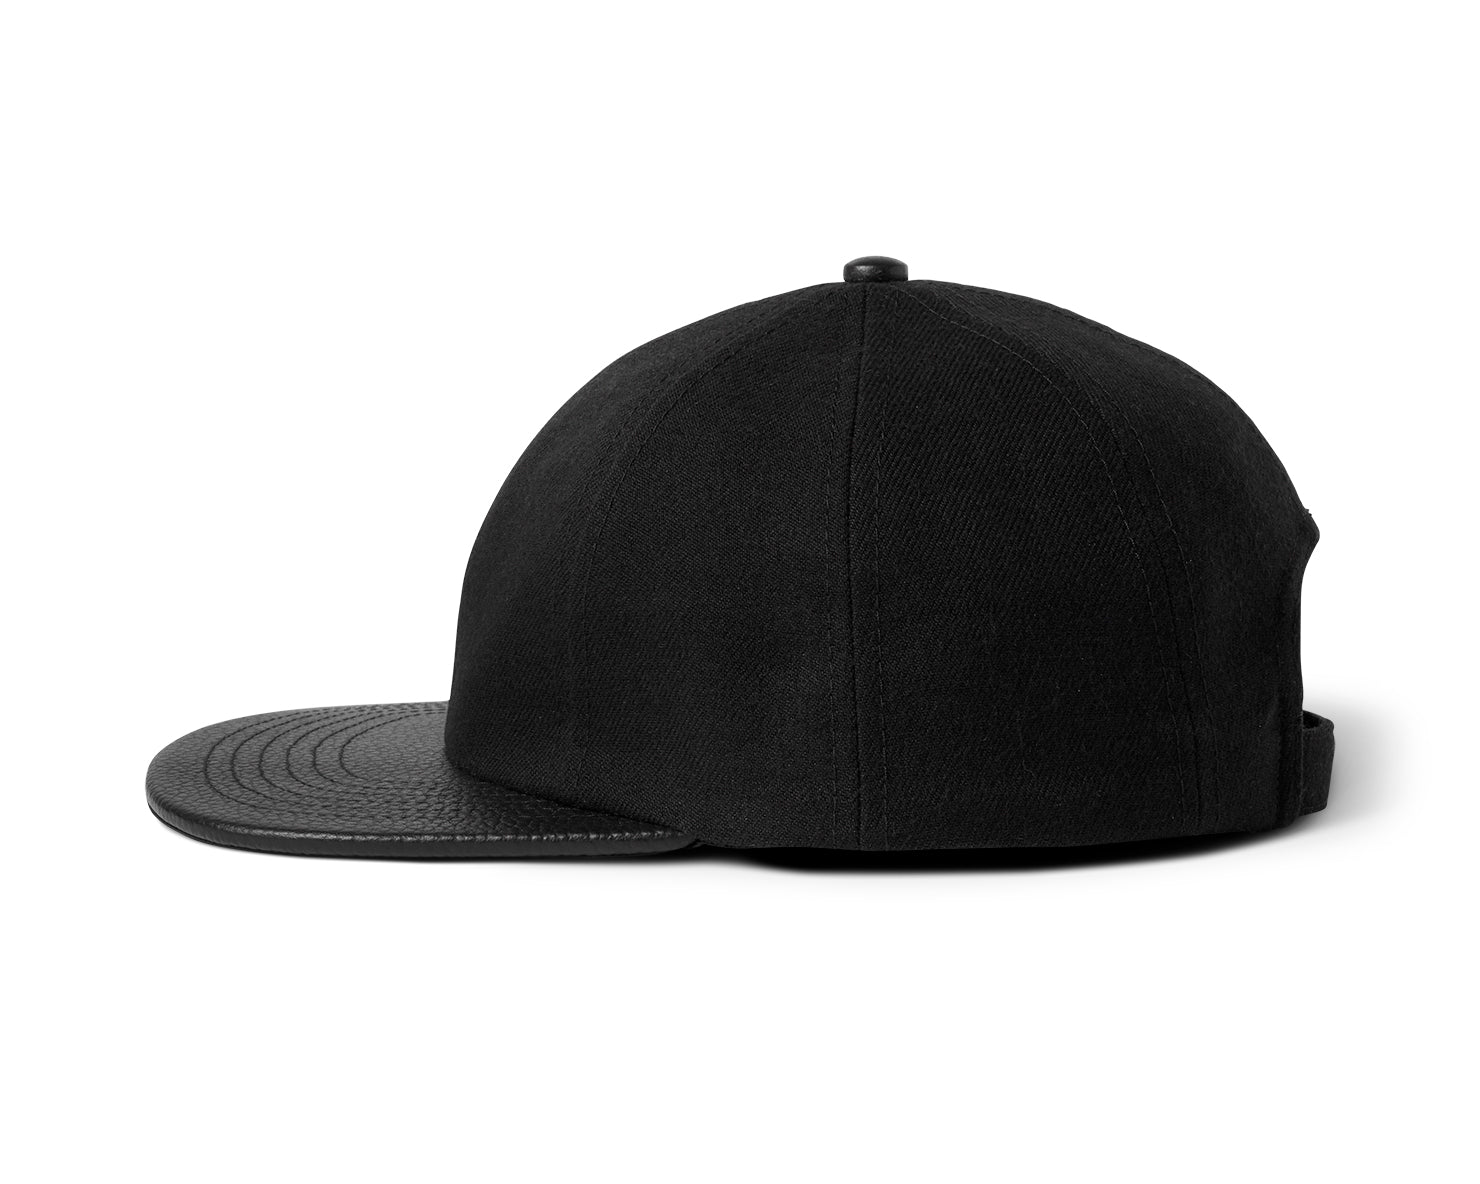 BLM 8 PANEL HAT | KILLSPENCER® - Black Leather